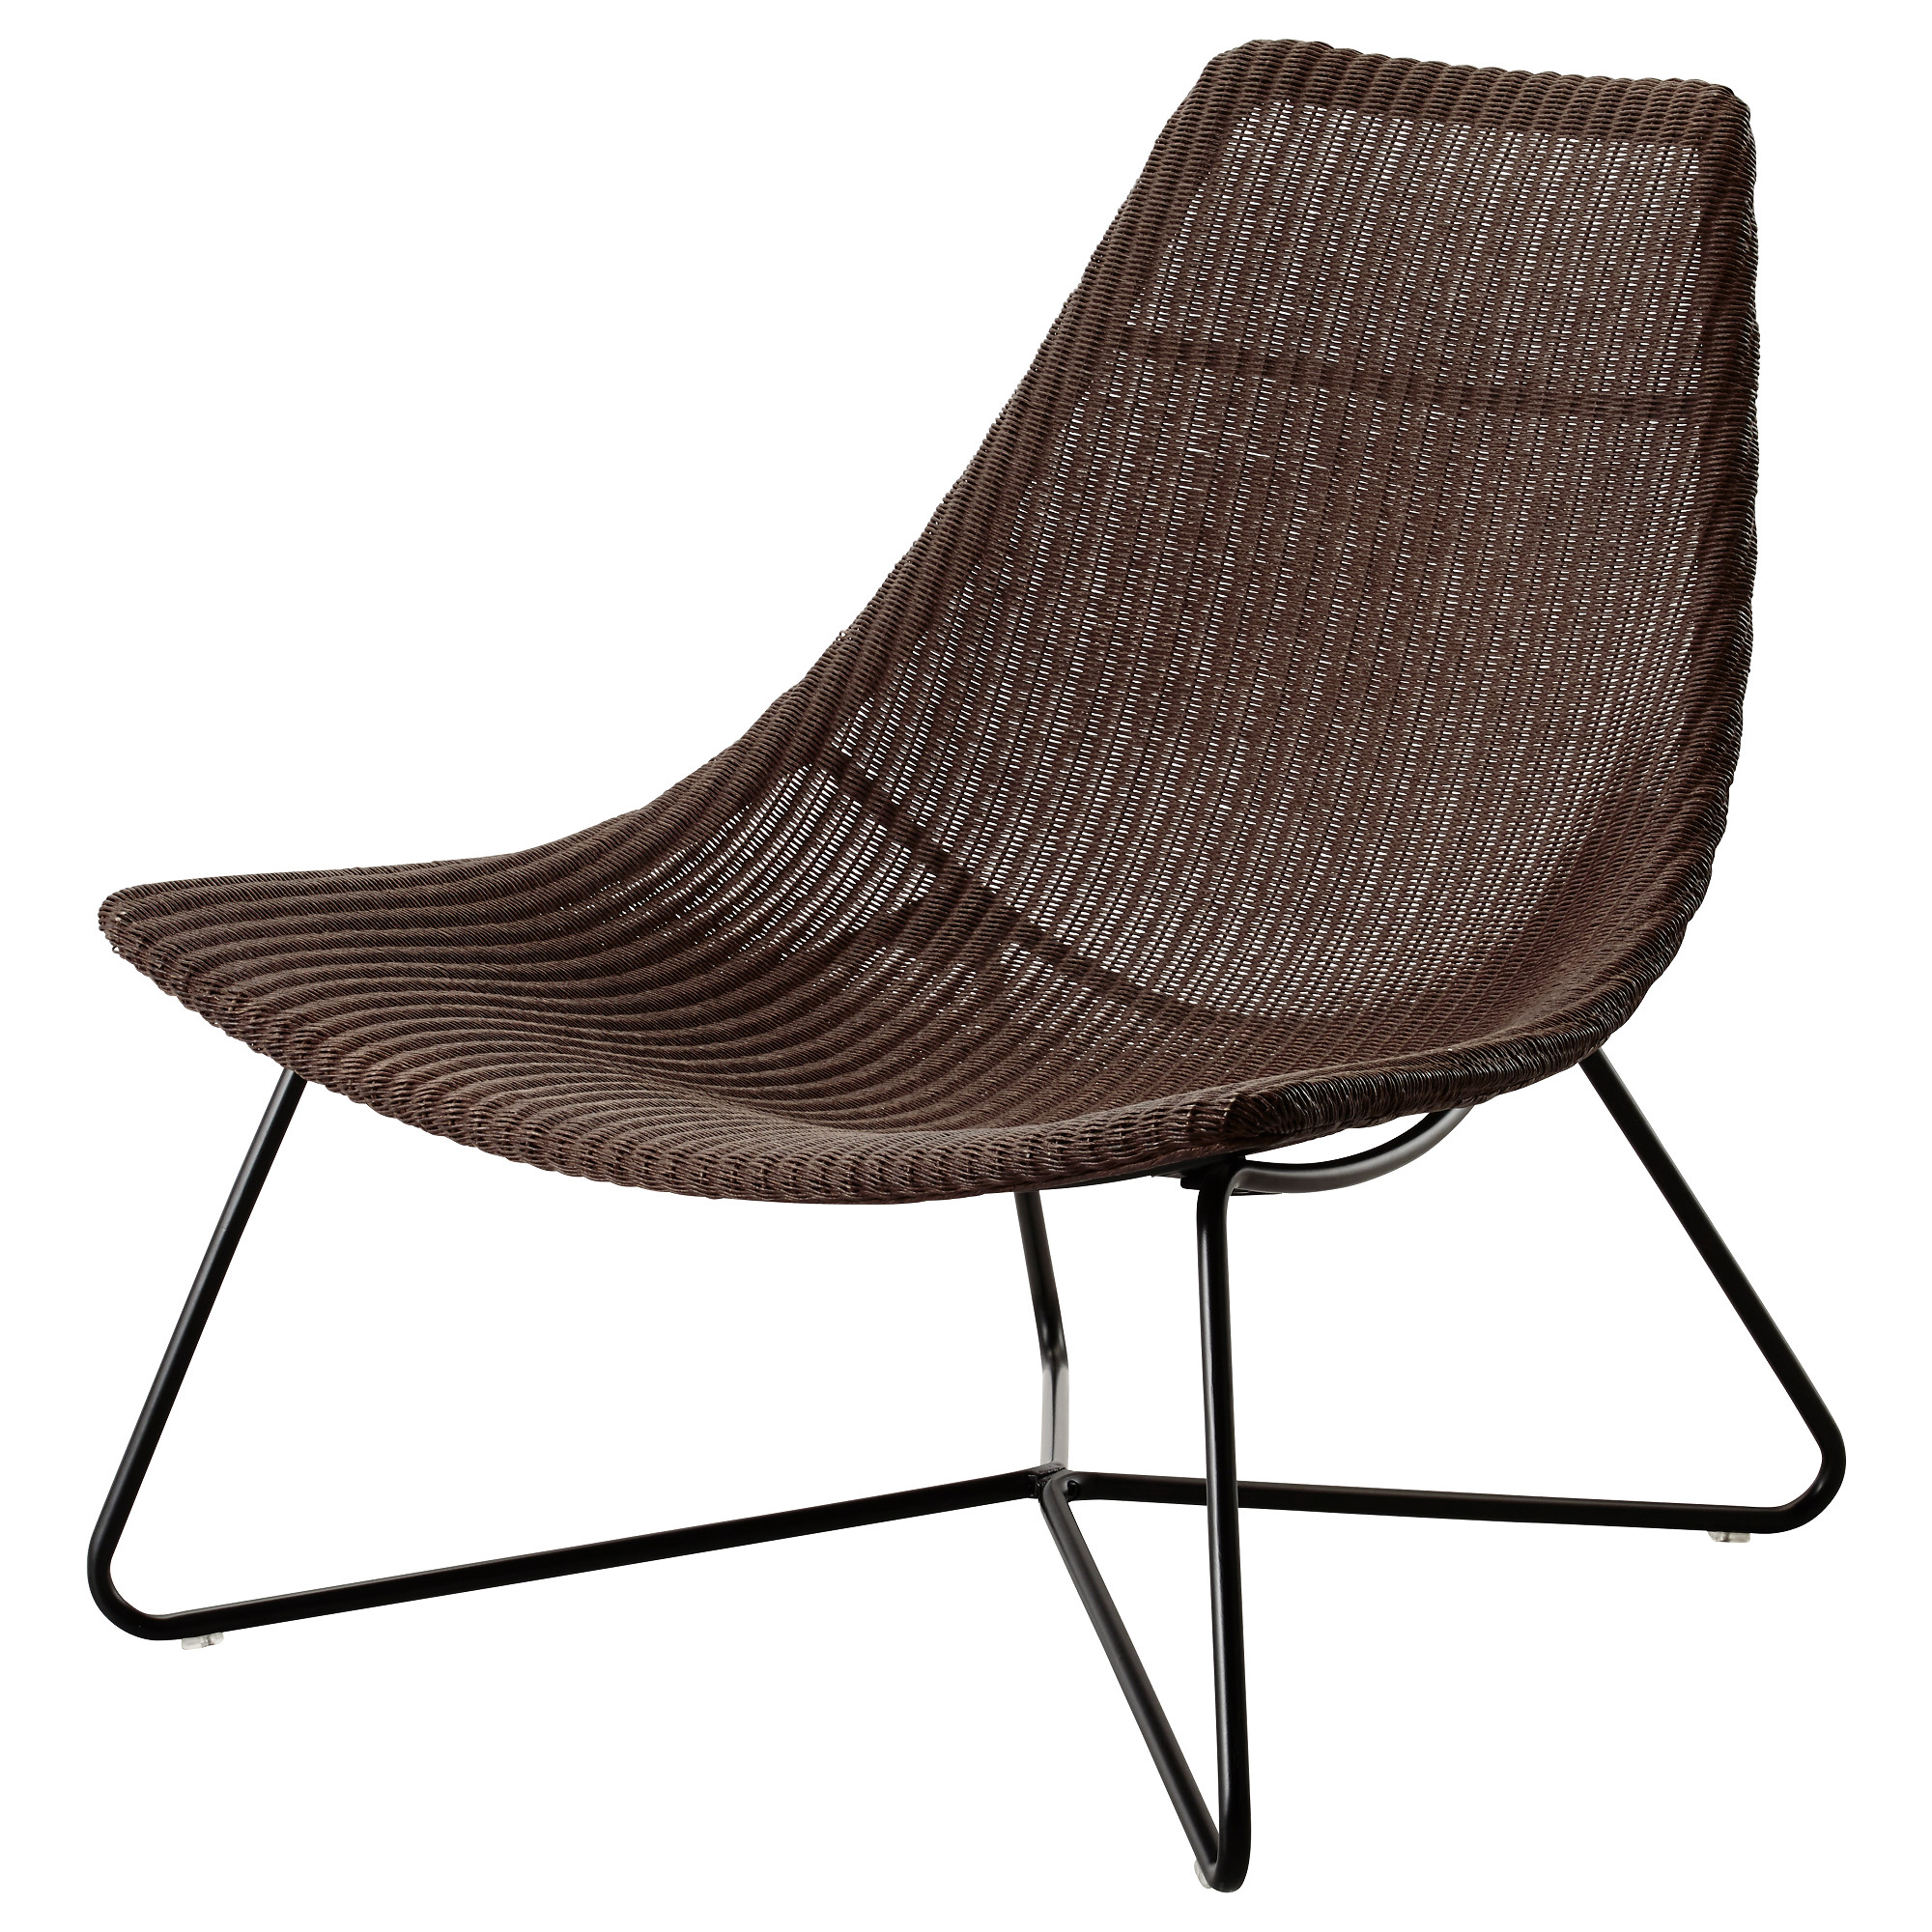 Basket chair ikea - R Dviken Chair Dark Brown Black Width 31 1 8 Depth